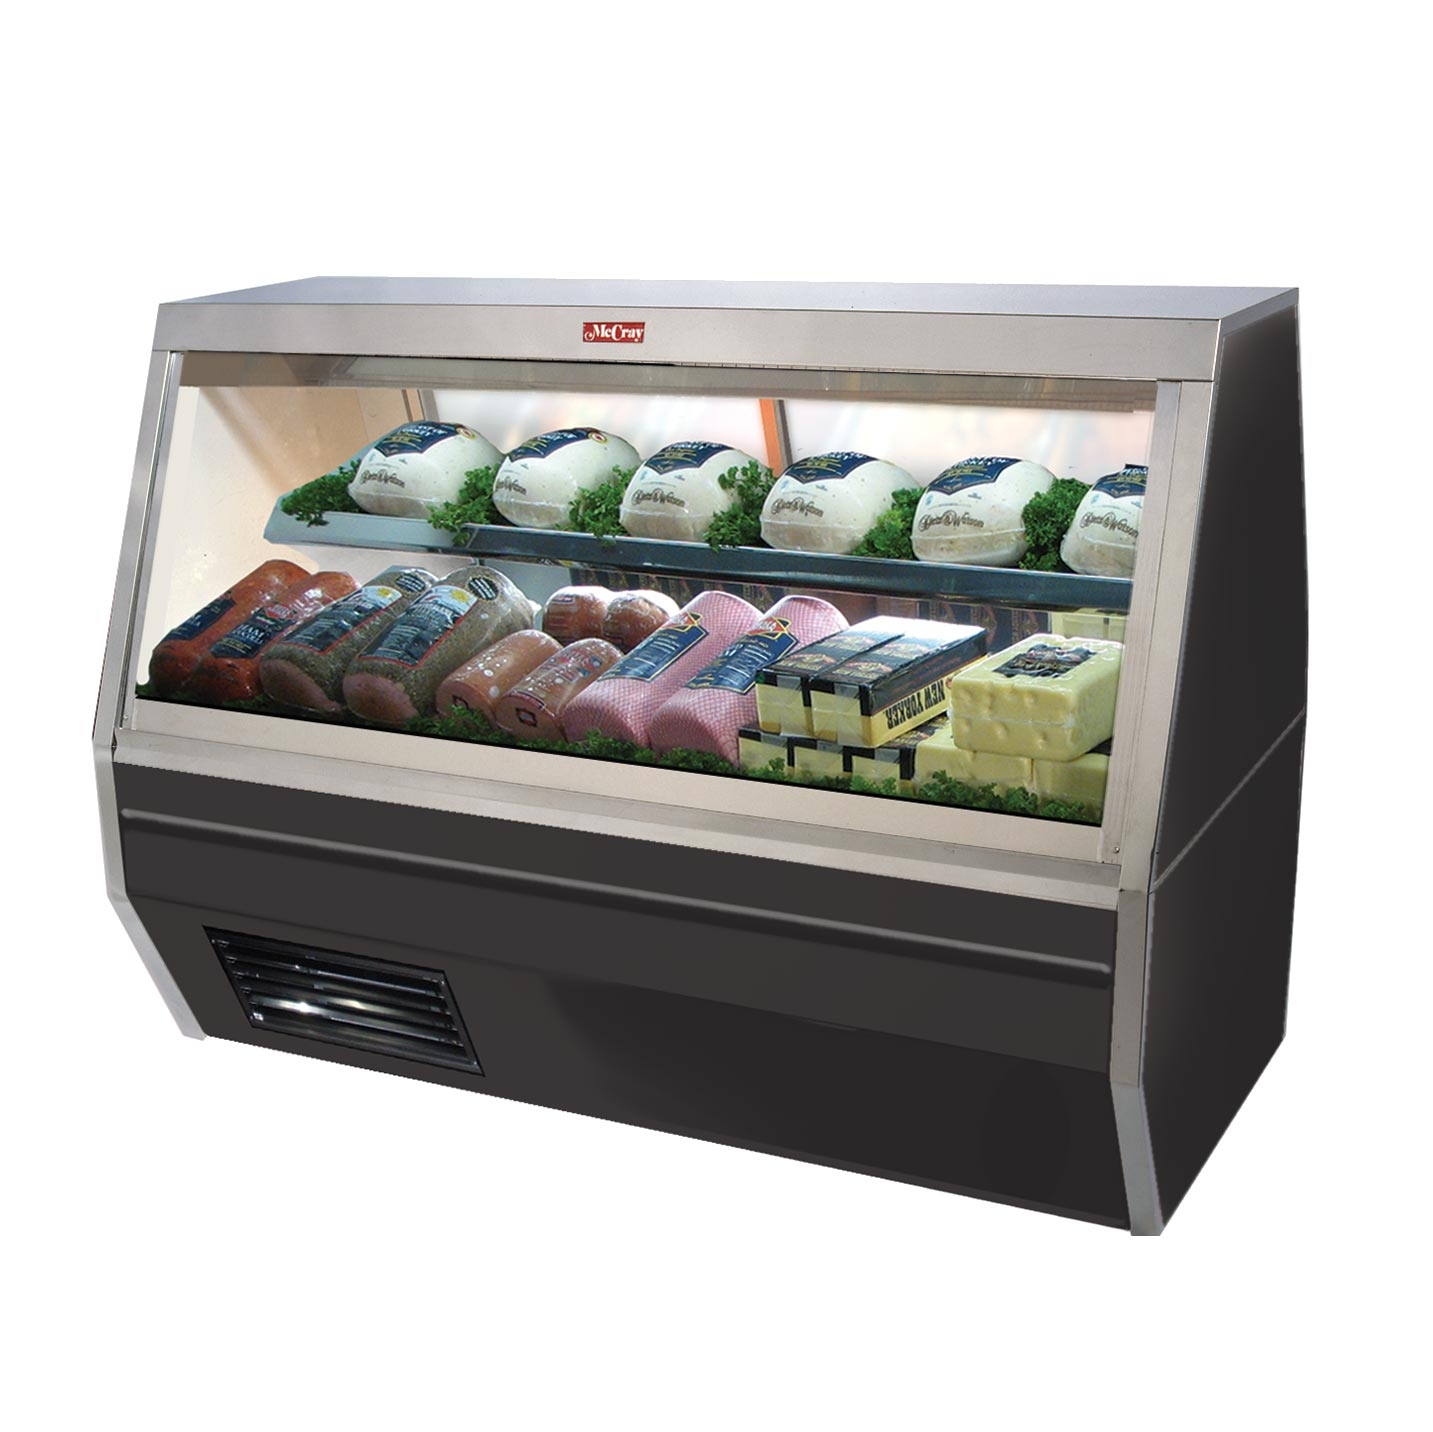 Howard-McCray R-CDS35-6-BE-LED display case, refrigerated deli